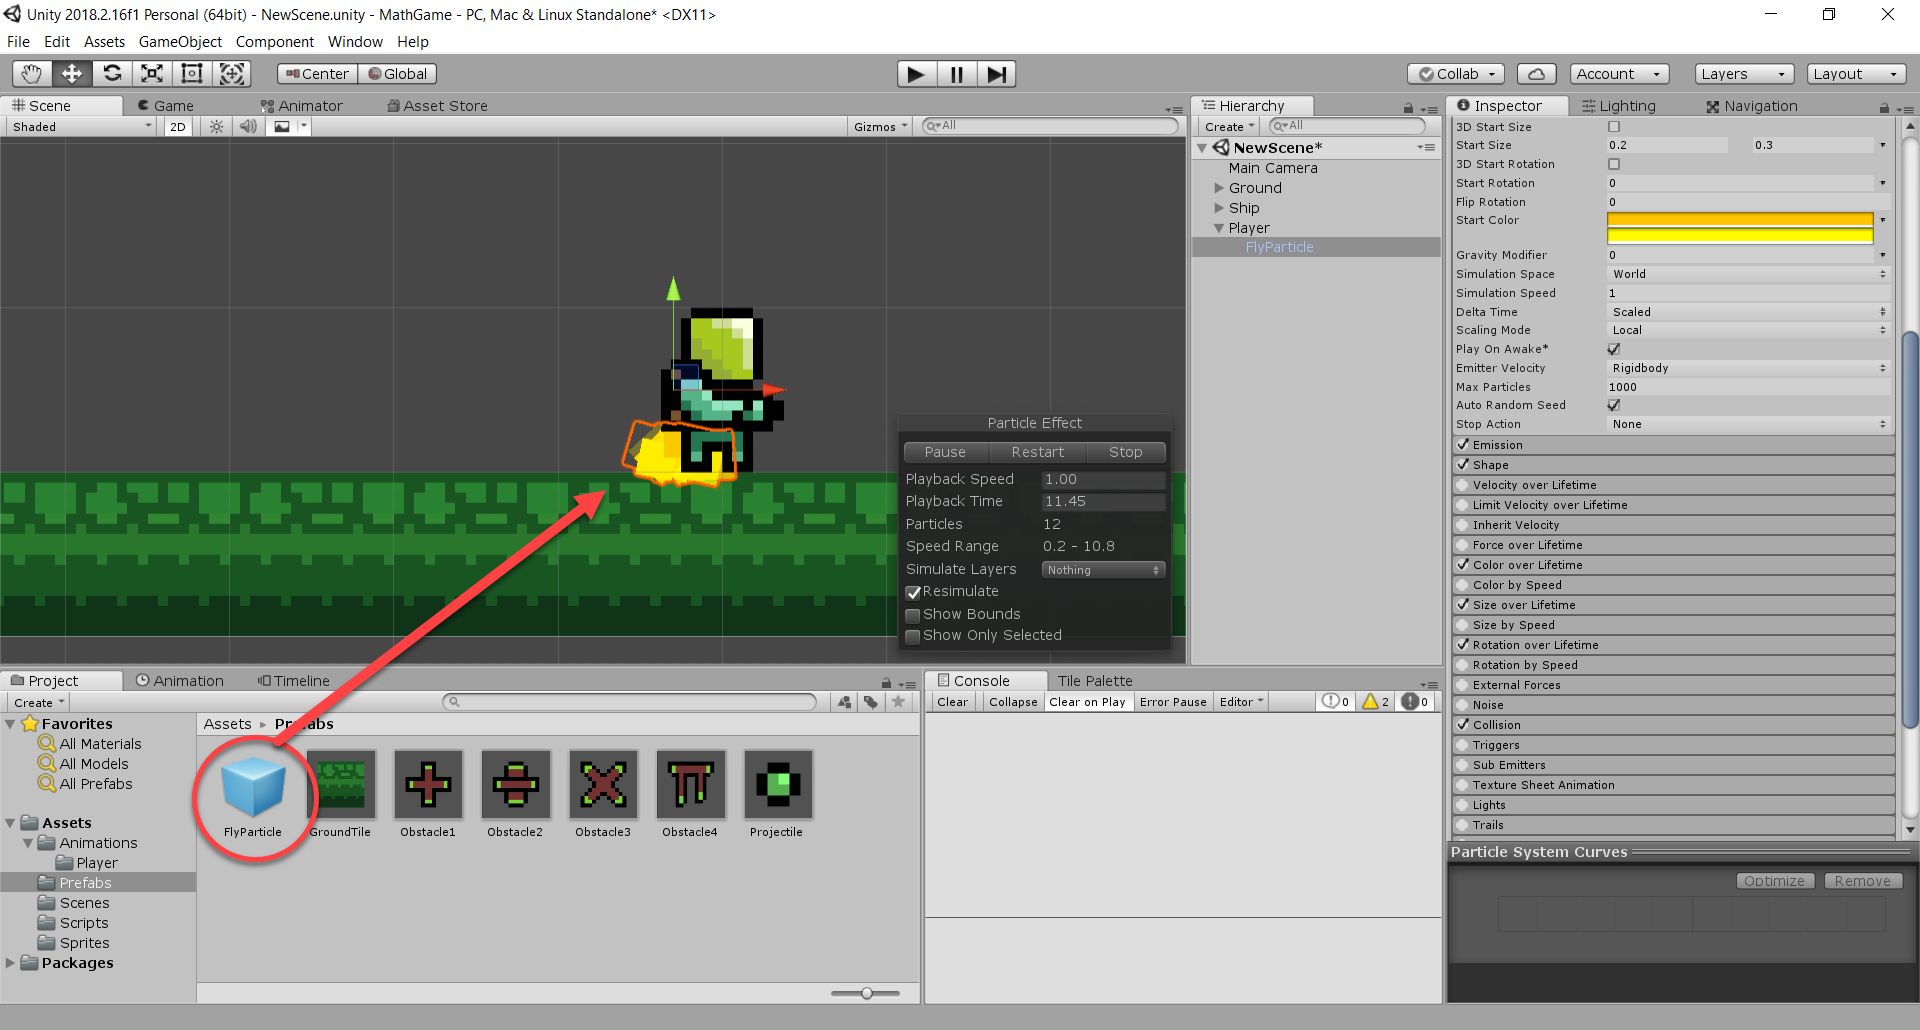 Jetpack particles added to Player object in Unity